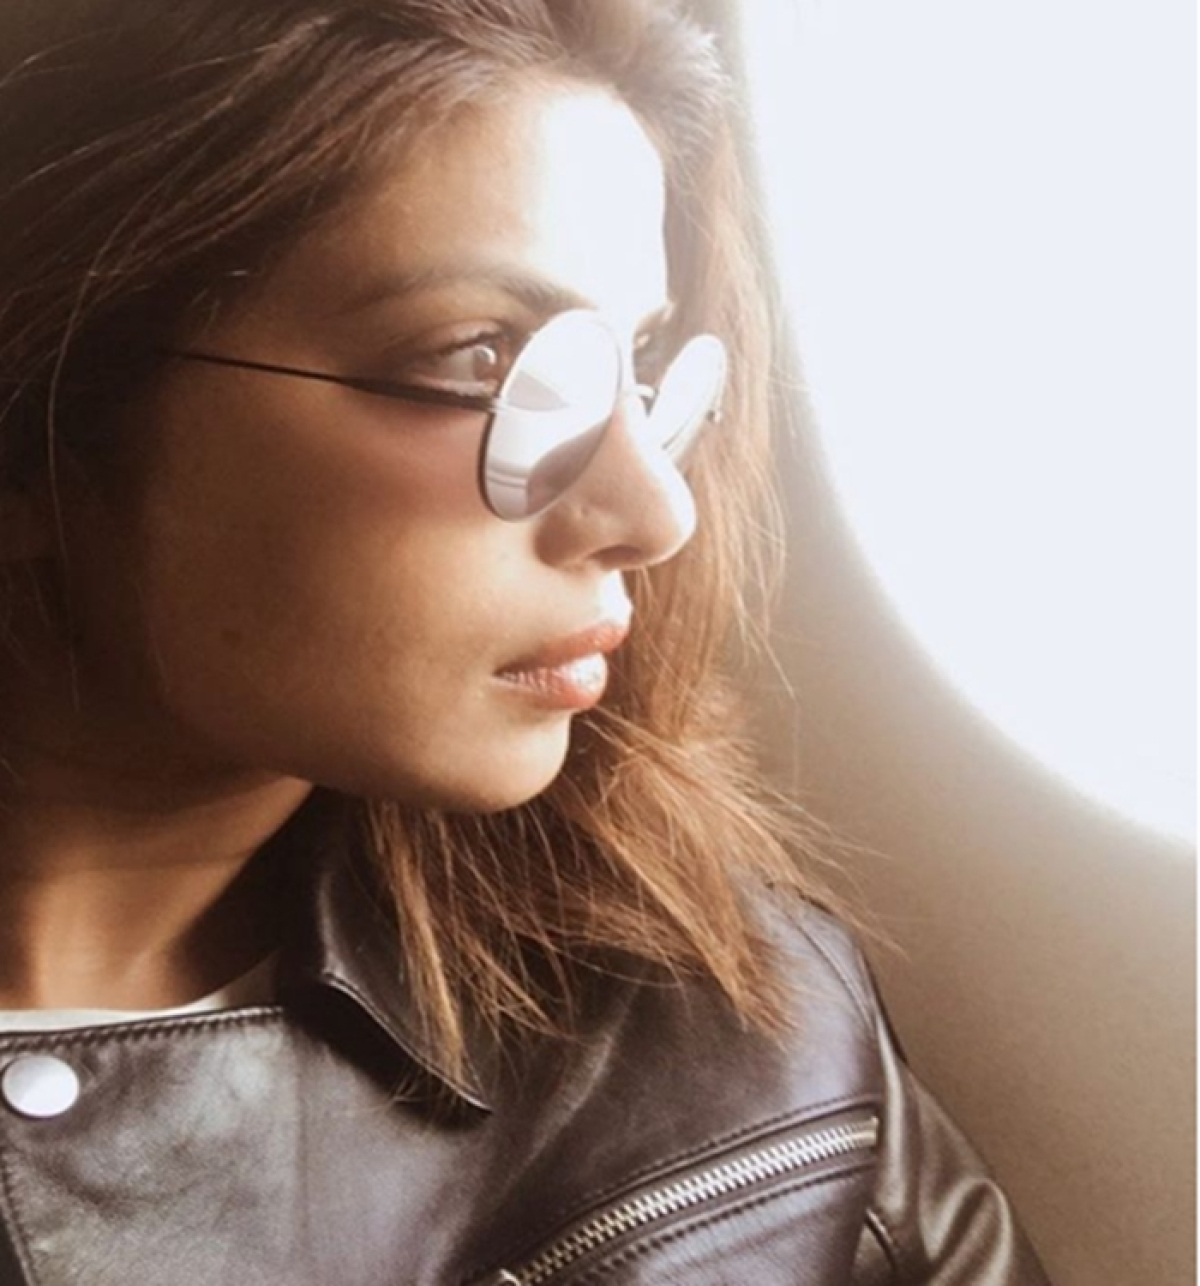 Priyanka Chopra feels like a 'nomad' in new Instagram still